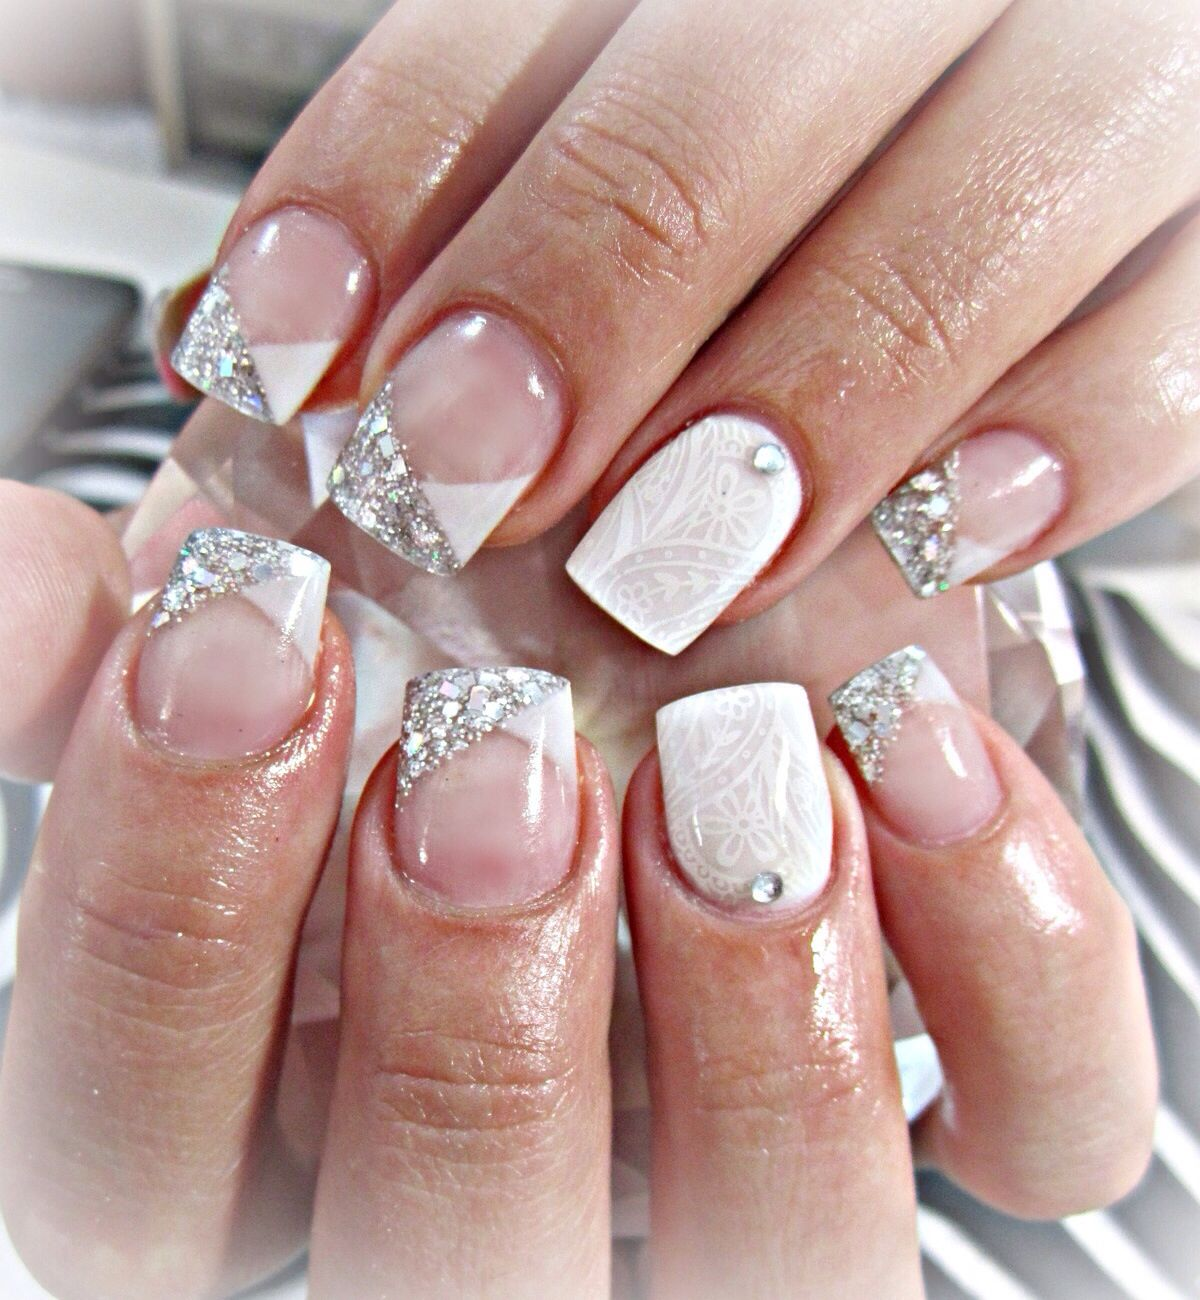 Silver and white acrylic nails | Acrylics | Pinterest | White ...